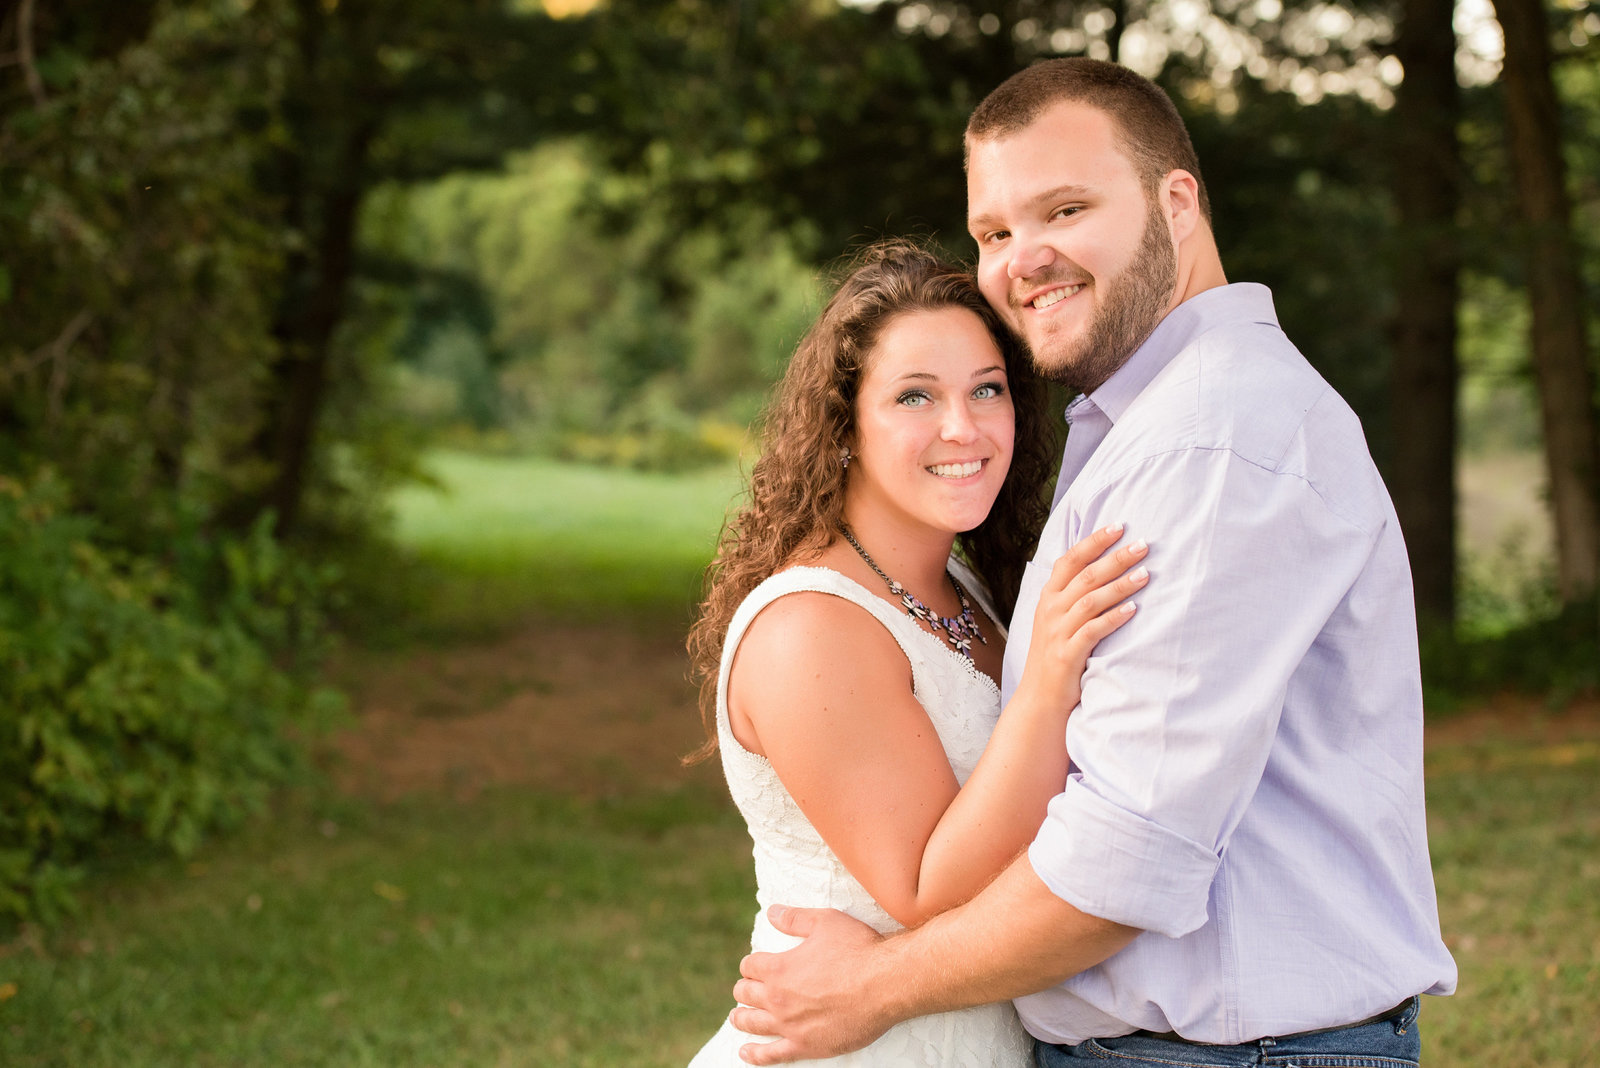 NJ_Rustic_Engagement_Photography148